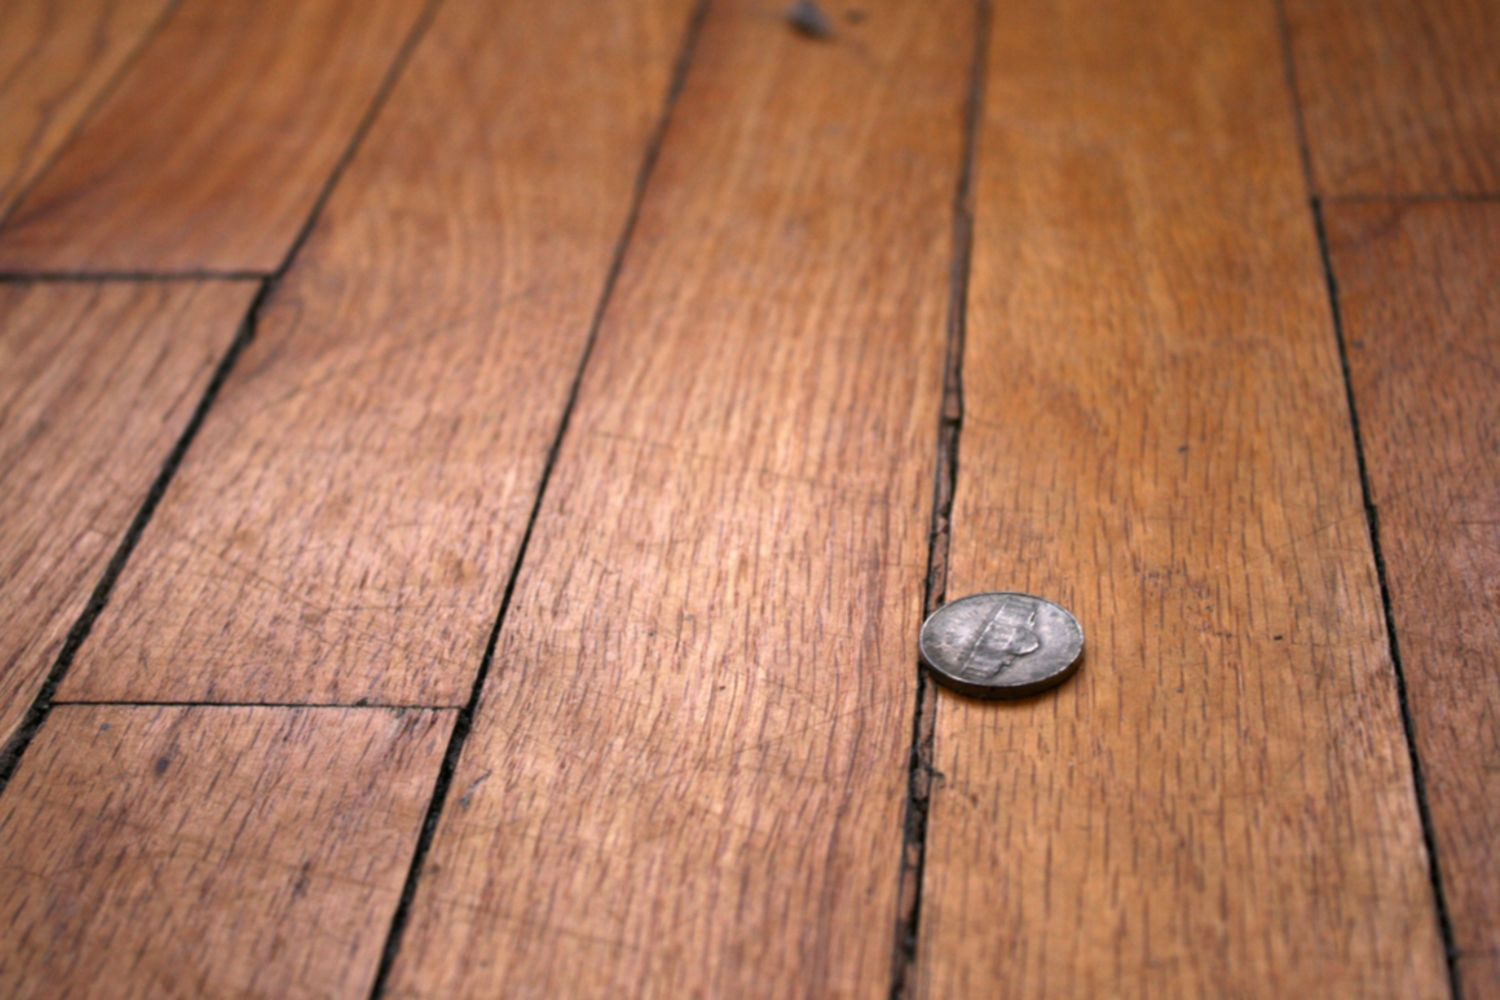 how to lay engineered hardwood flooring on concrete of why your engineered wood flooring has gaps throughout wood floor with gaps between boards 1500 x 1000 56a49eb25f9b58b7d0d7df8d